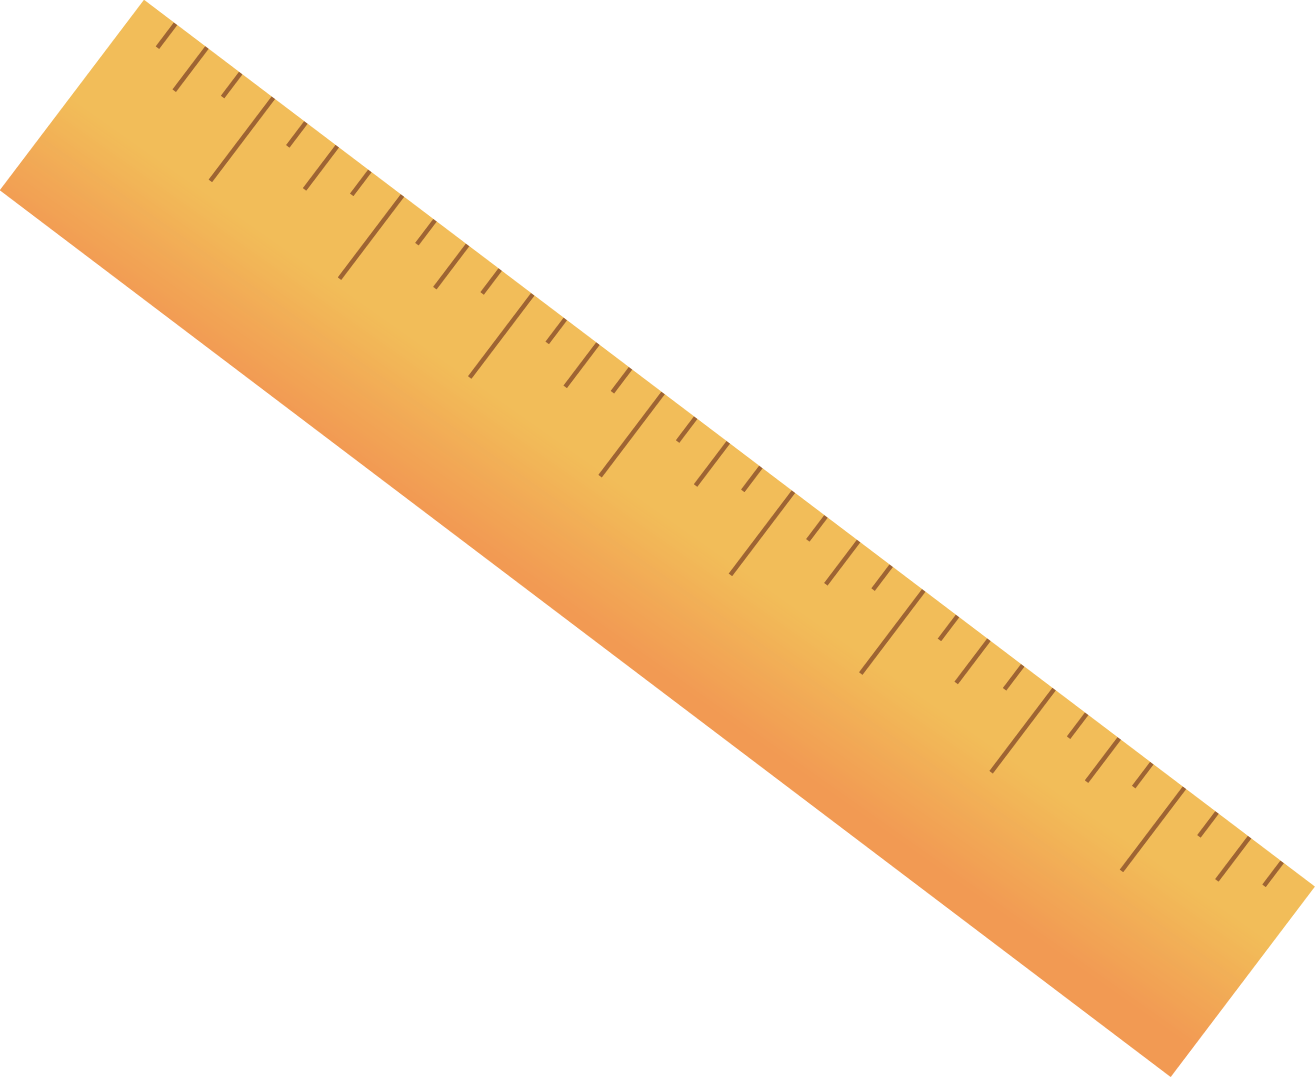 Wooden ruler png. Transparent free images only